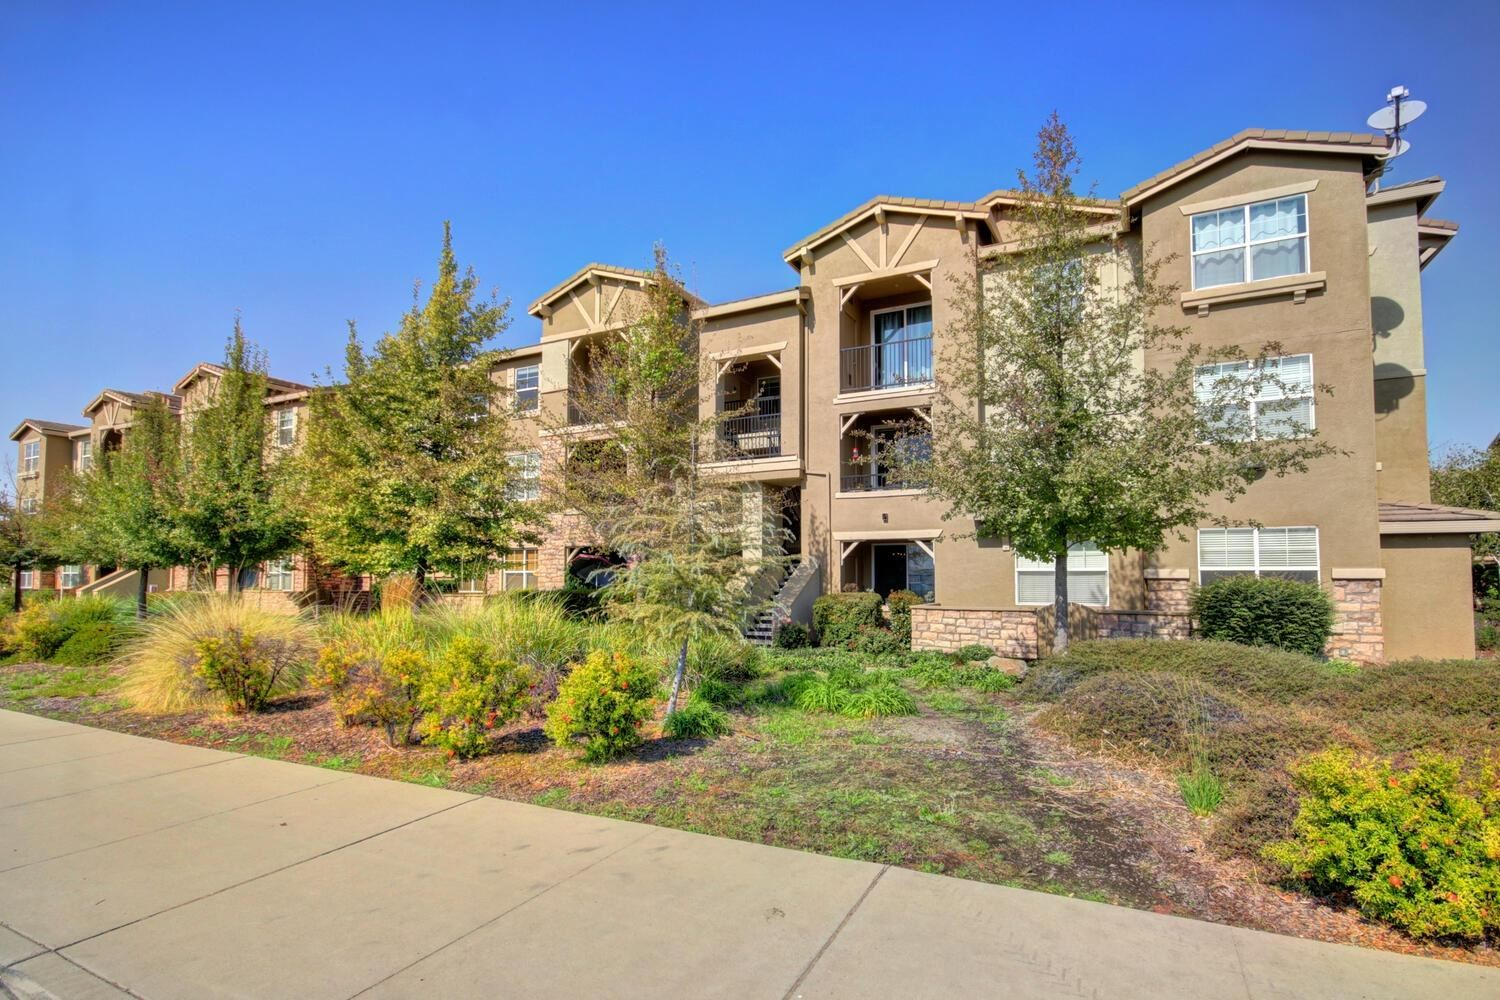 Photo of 1240 Whitney Ranch Parkway #334, Rocklin, CA 95765 (MLS # 20063015)